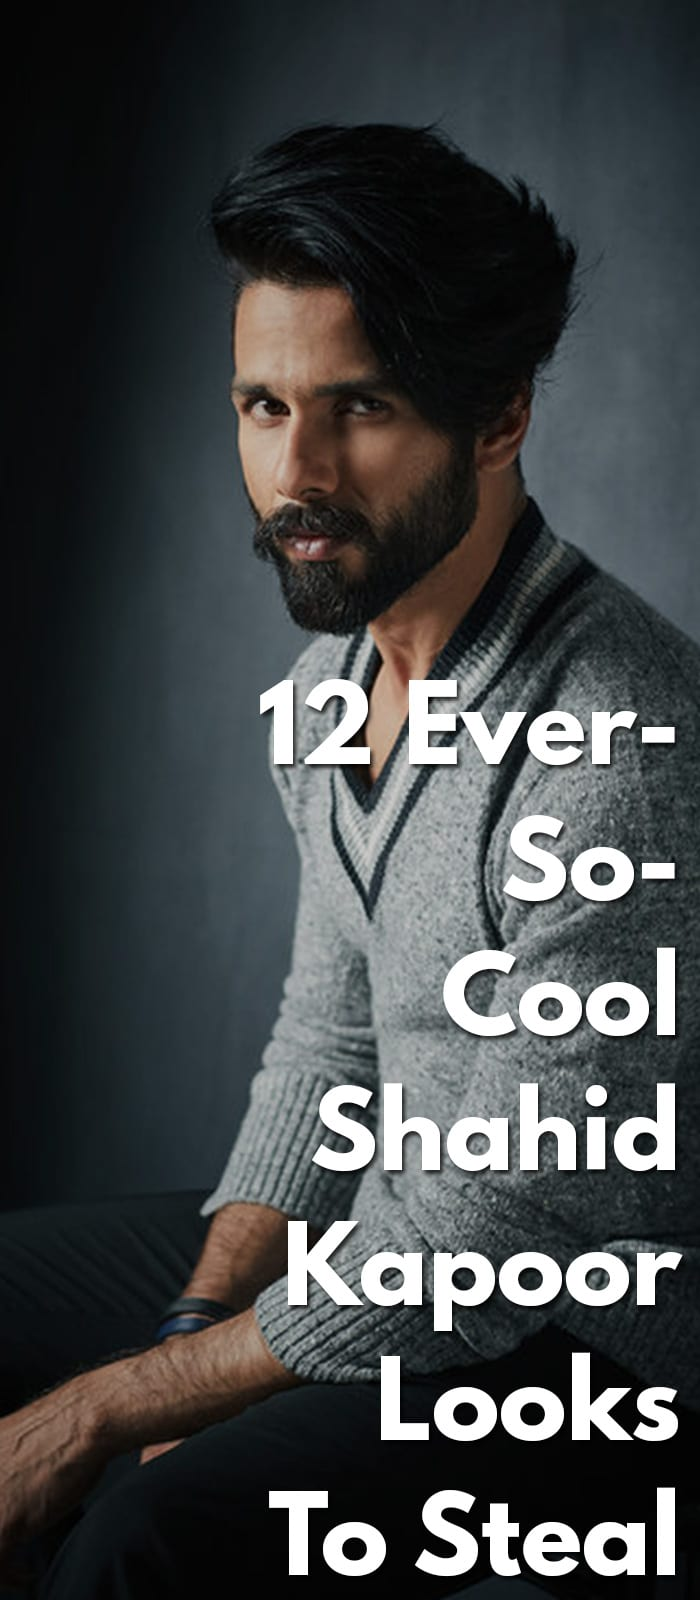 12 Ever-So-Cool Shahid Kapoor Looks To Steal!